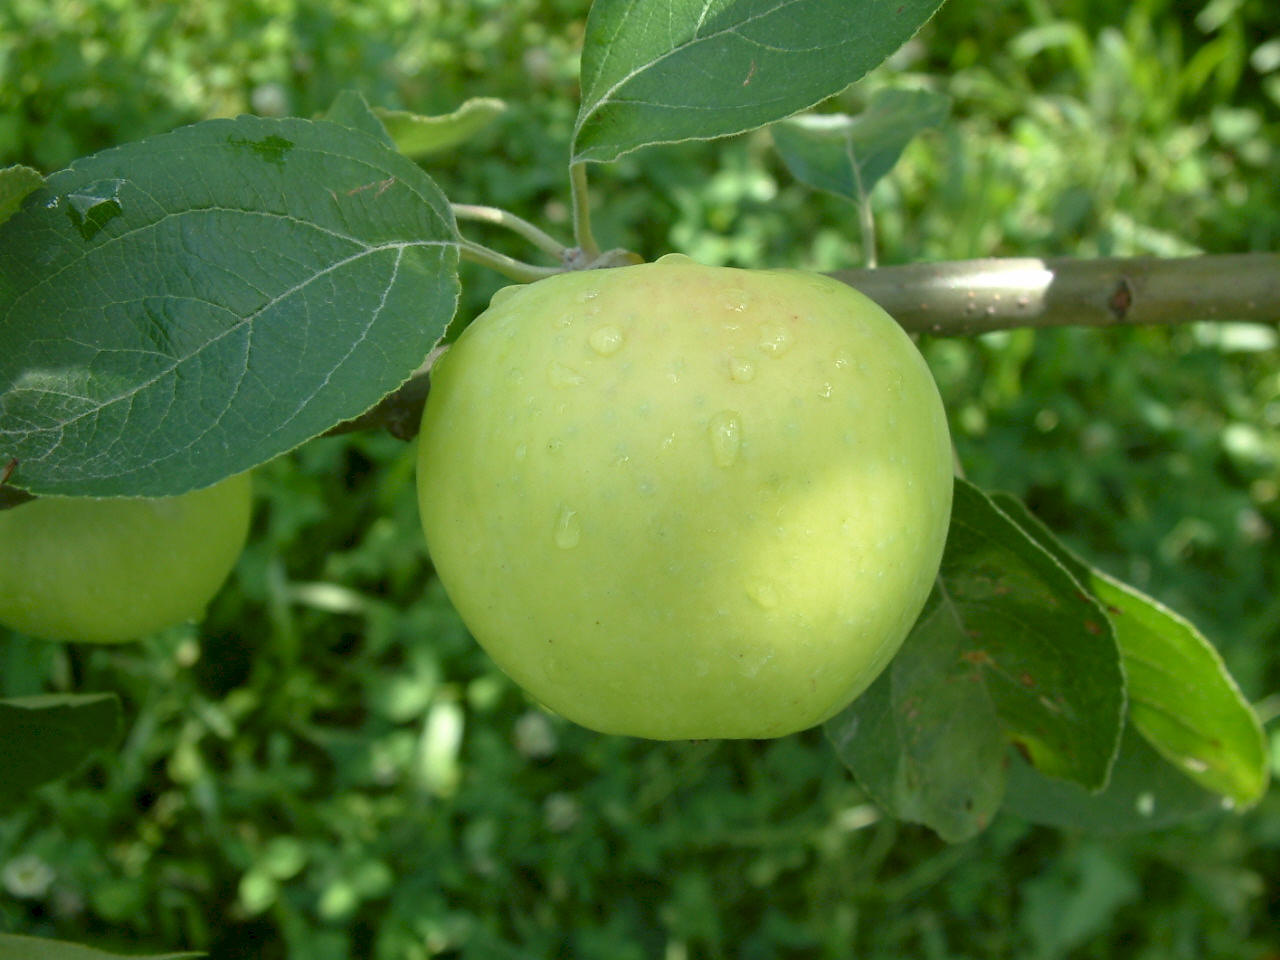 Yellow Transparent Apple.jpg